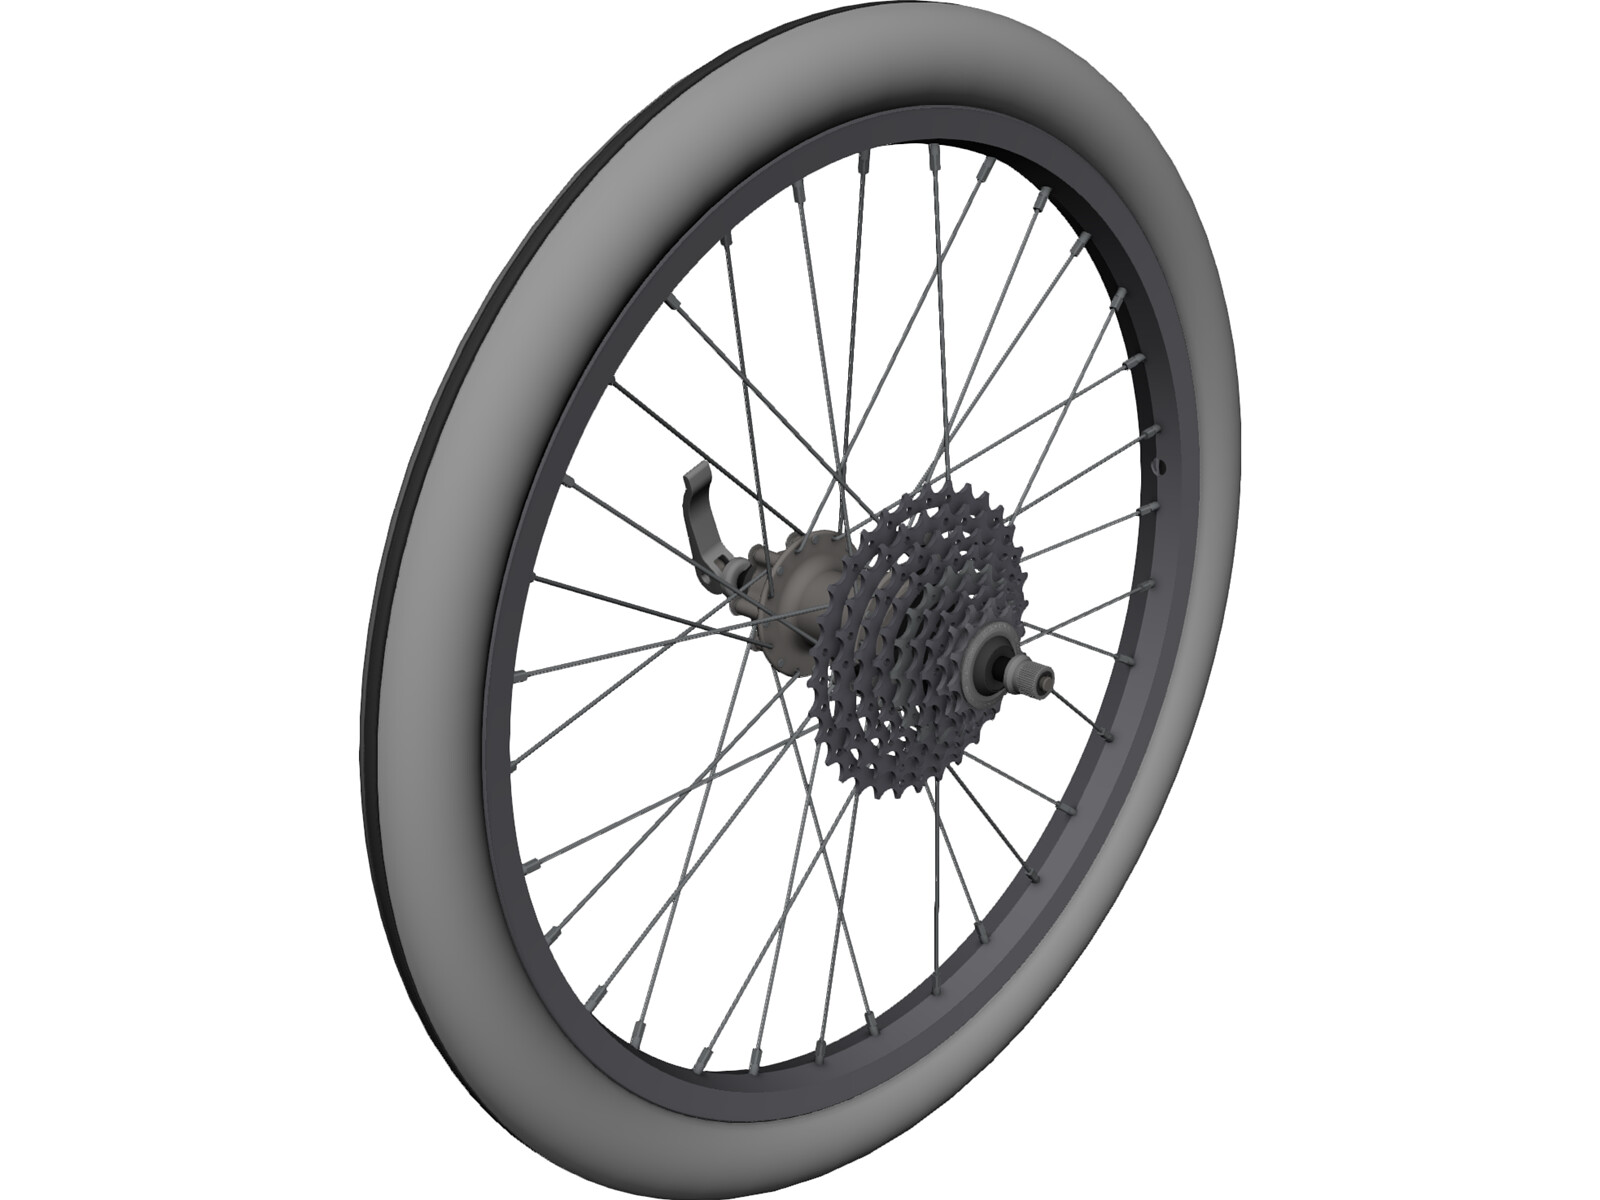 Bike Rear Wheel 20inch 3D Model